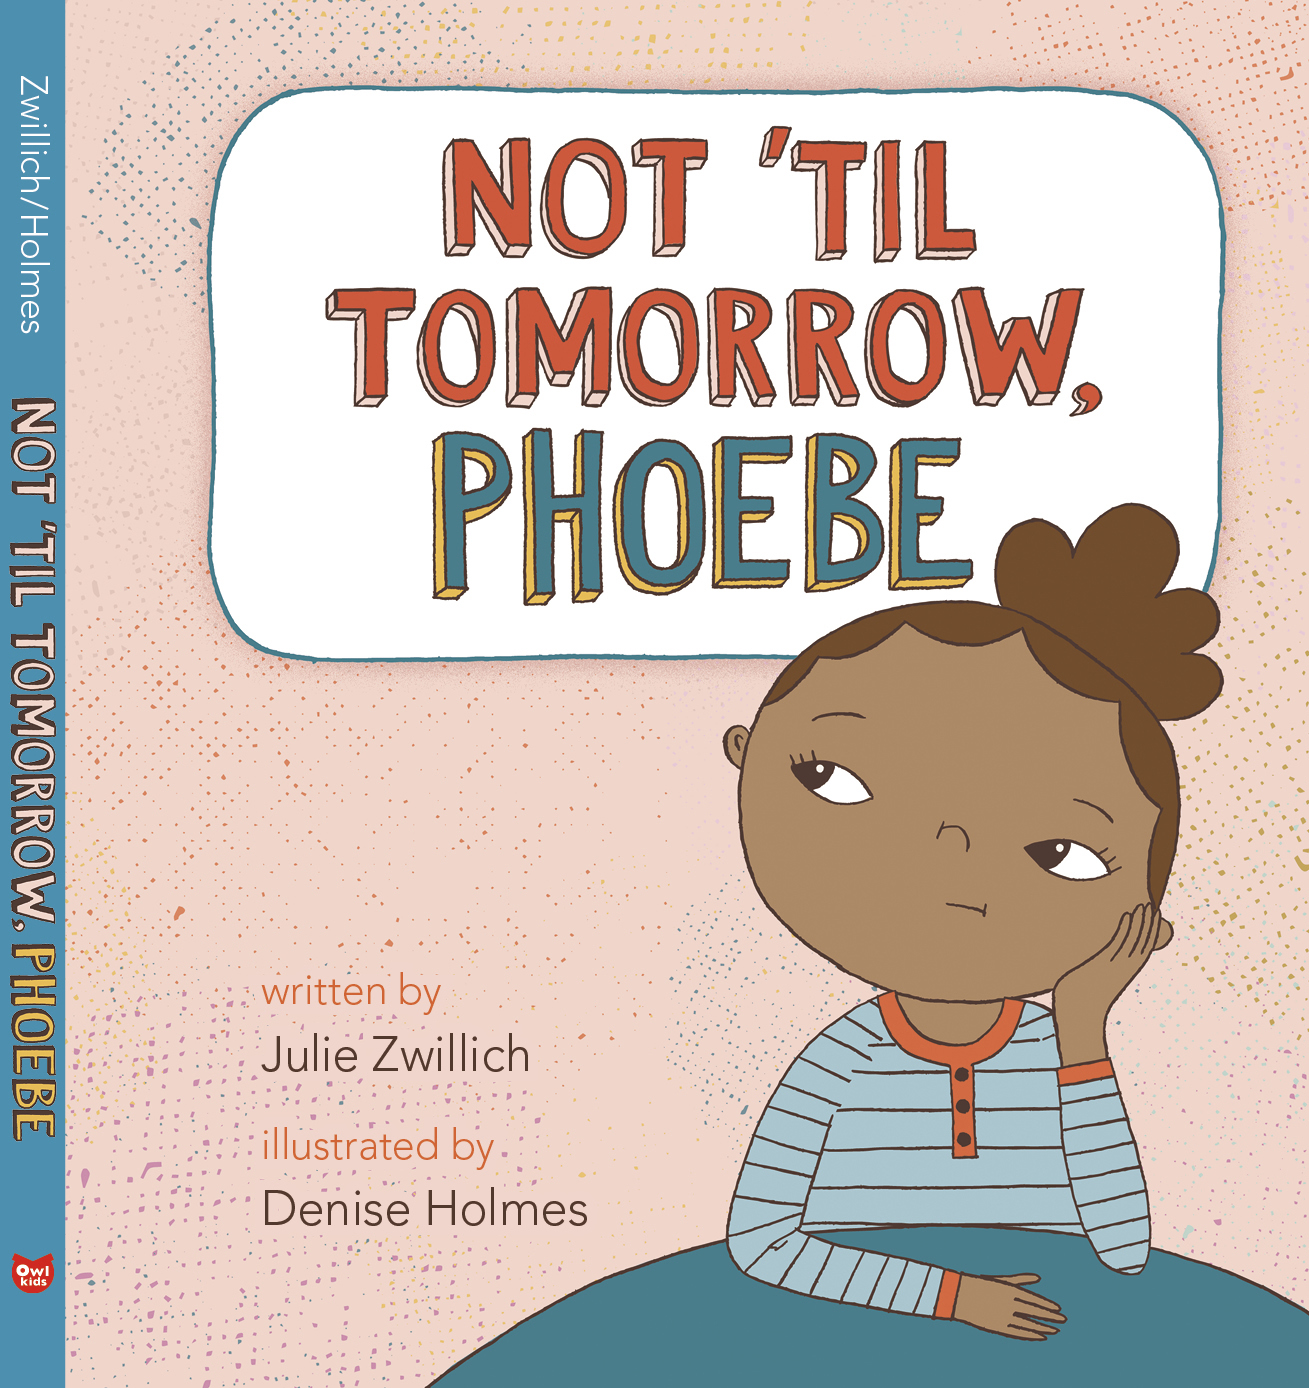 NotTilTomorrowPhoebe_cover-spine_screenRGB.jpg